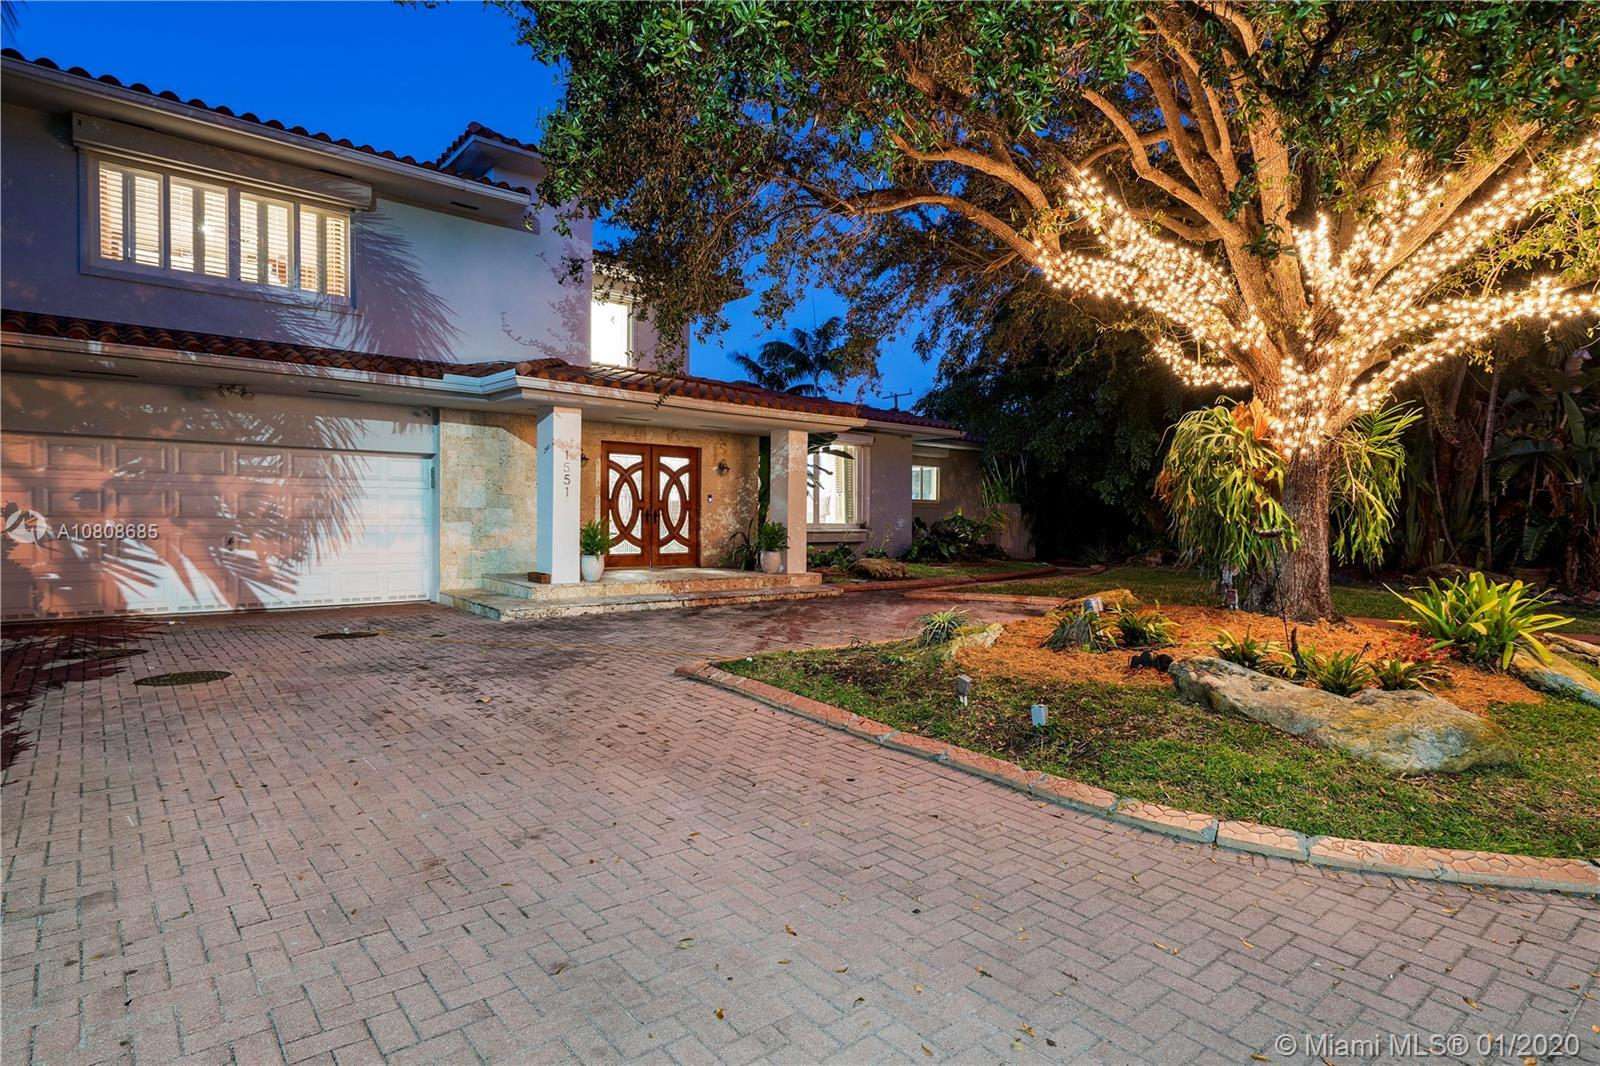 Stunning & unique 2 story pool home in one of the most desirable streets in Miami Shores. Easts of B